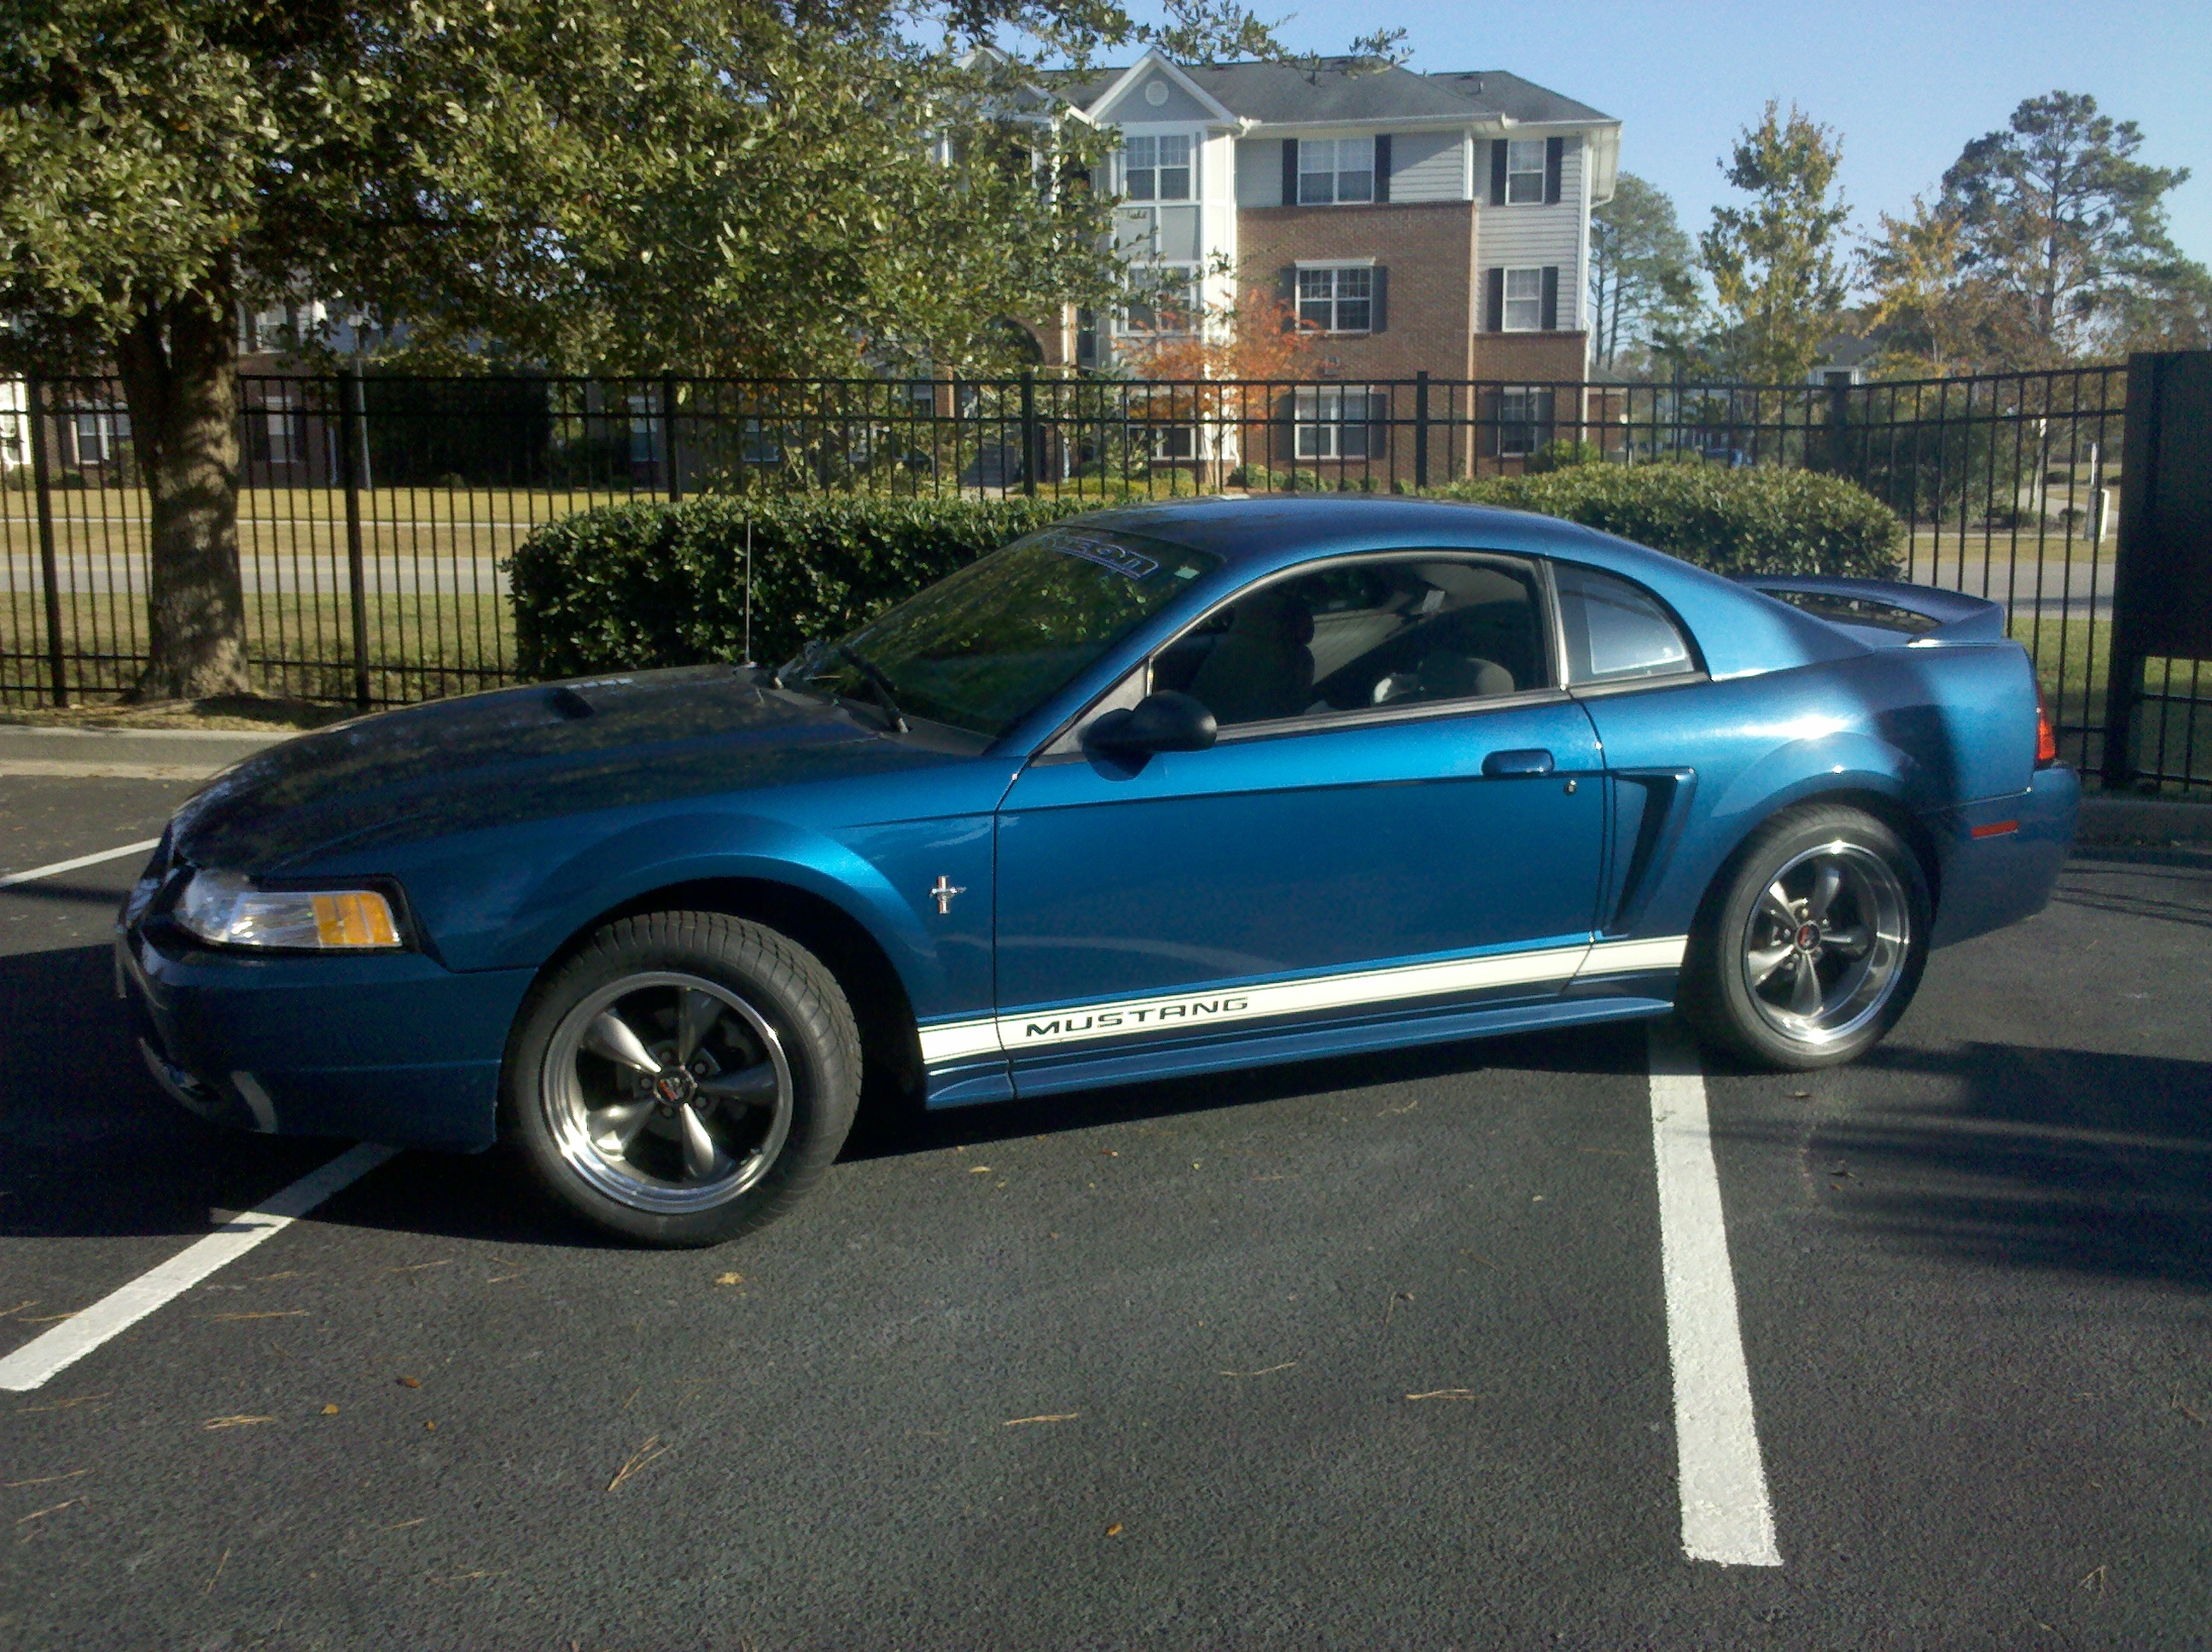 sonic v6 stang 2000 ford mustangcoupe 2d specs photos. Black Bedroom Furniture Sets. Home Design Ideas